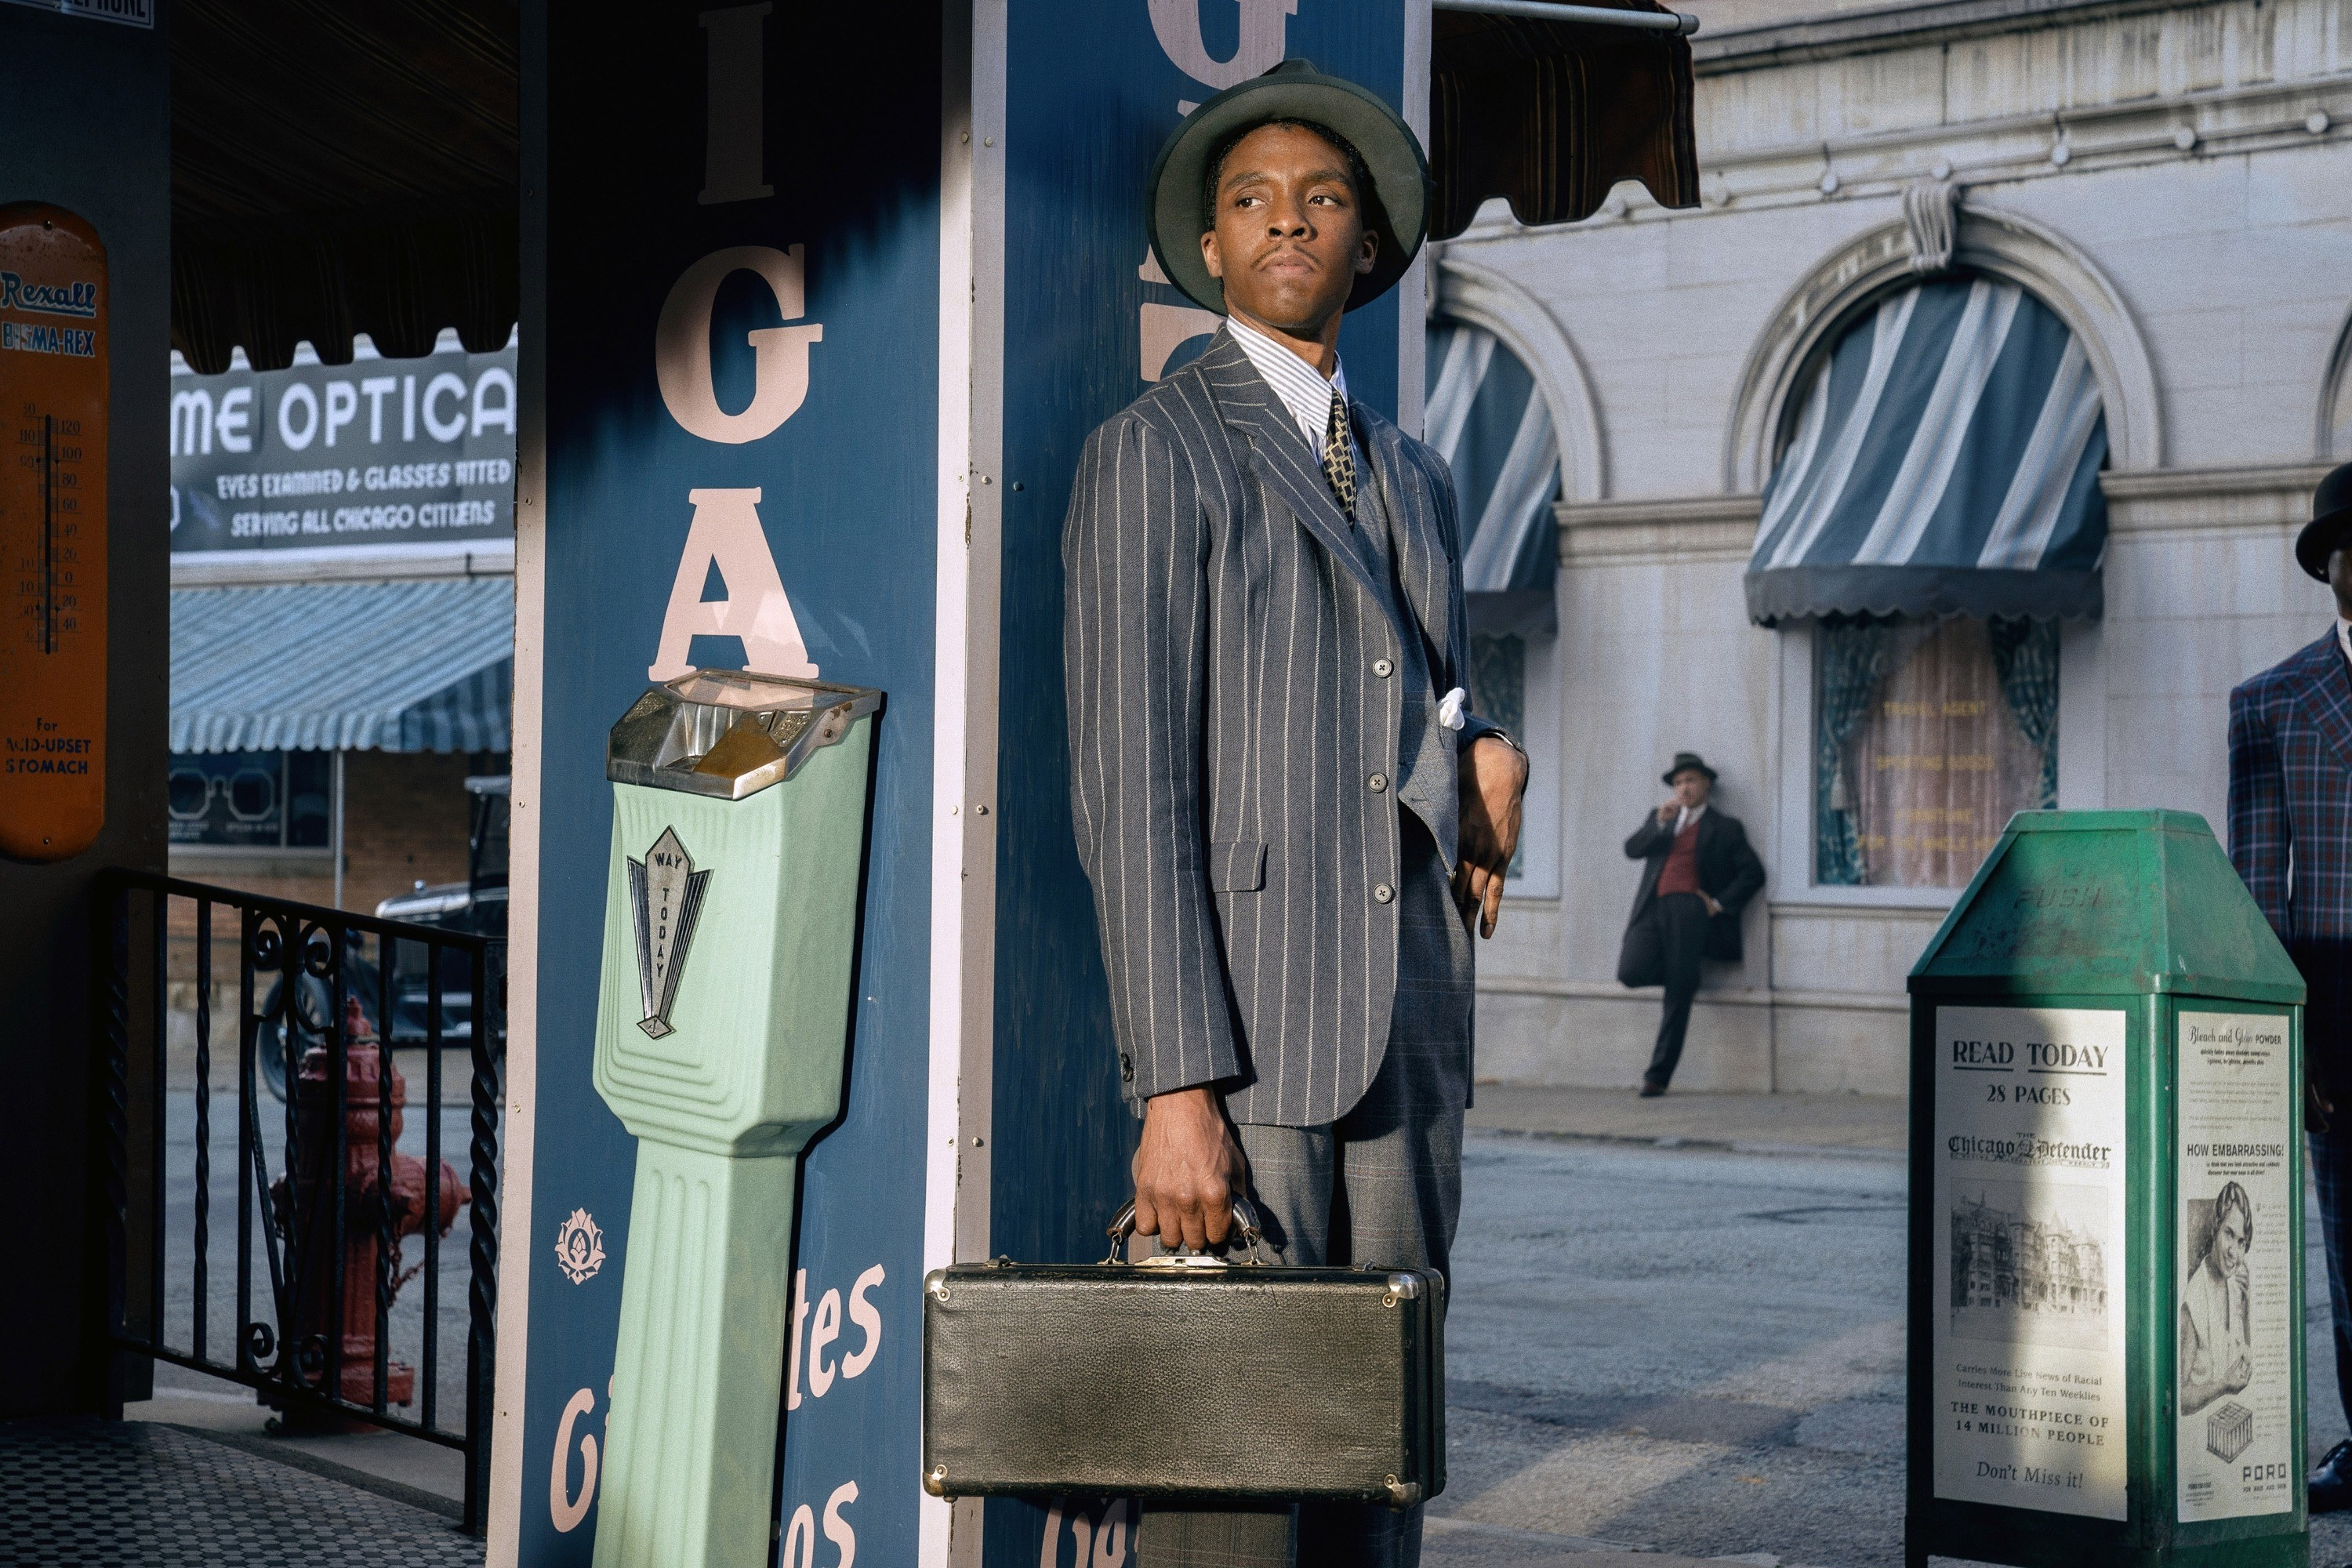 Boseman stands carrying a suitcase in Ma Rainey's Black Bottom